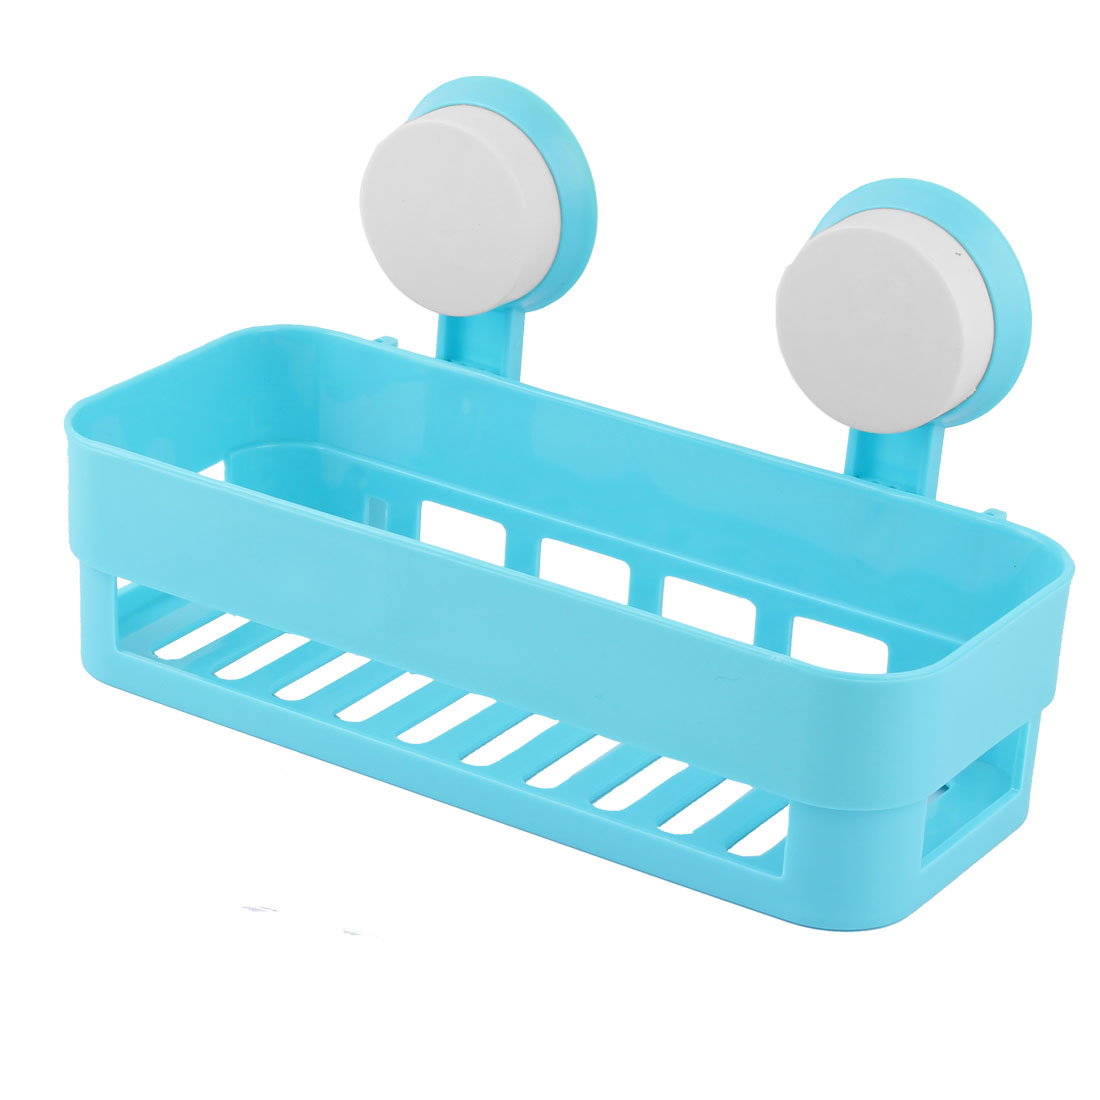 Bathroom Kitchen Plastic Suction Cup Toiletry Shelf Storage Rack Holder Blue